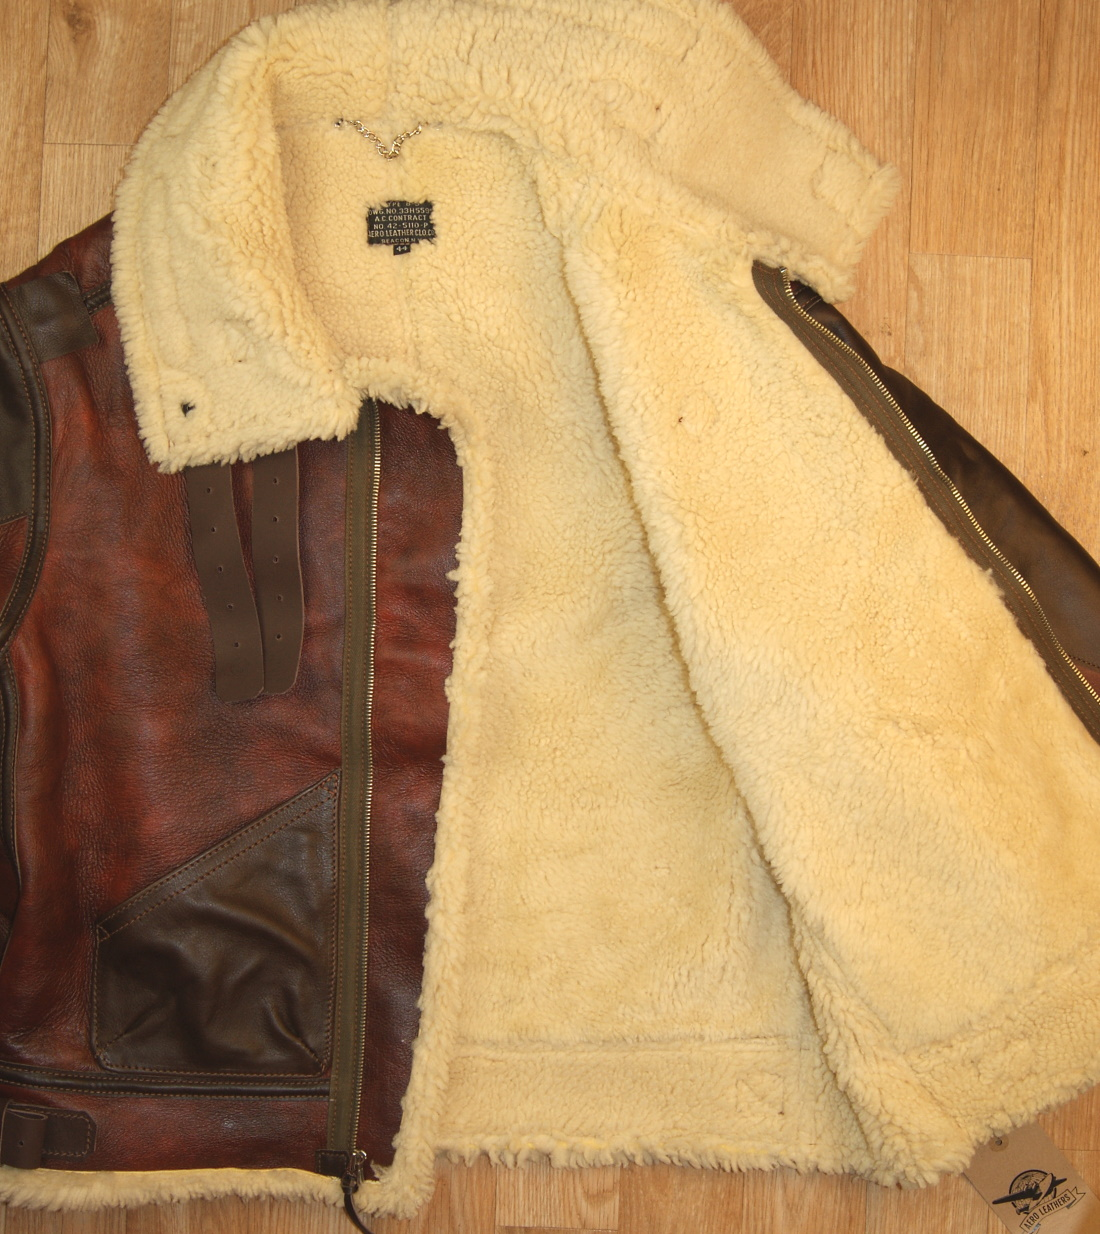 Aero B-3 Redskin 15mm thinner shearling open.jpg